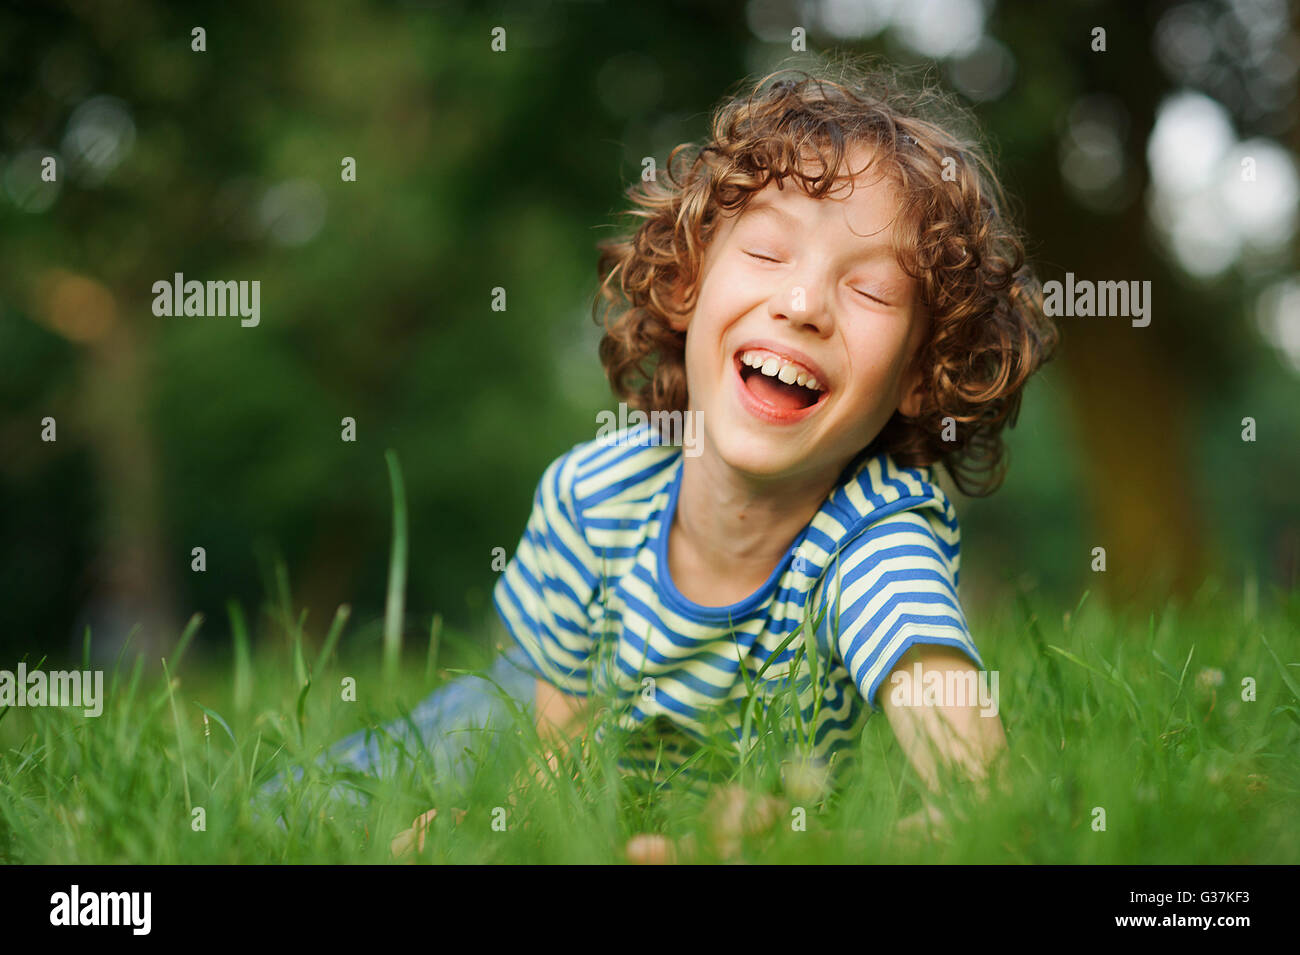 The thin boy of 8-9 years lies in a green grass and laughs loudly.He has closed eyes from pleasure.The child has - Stock Image